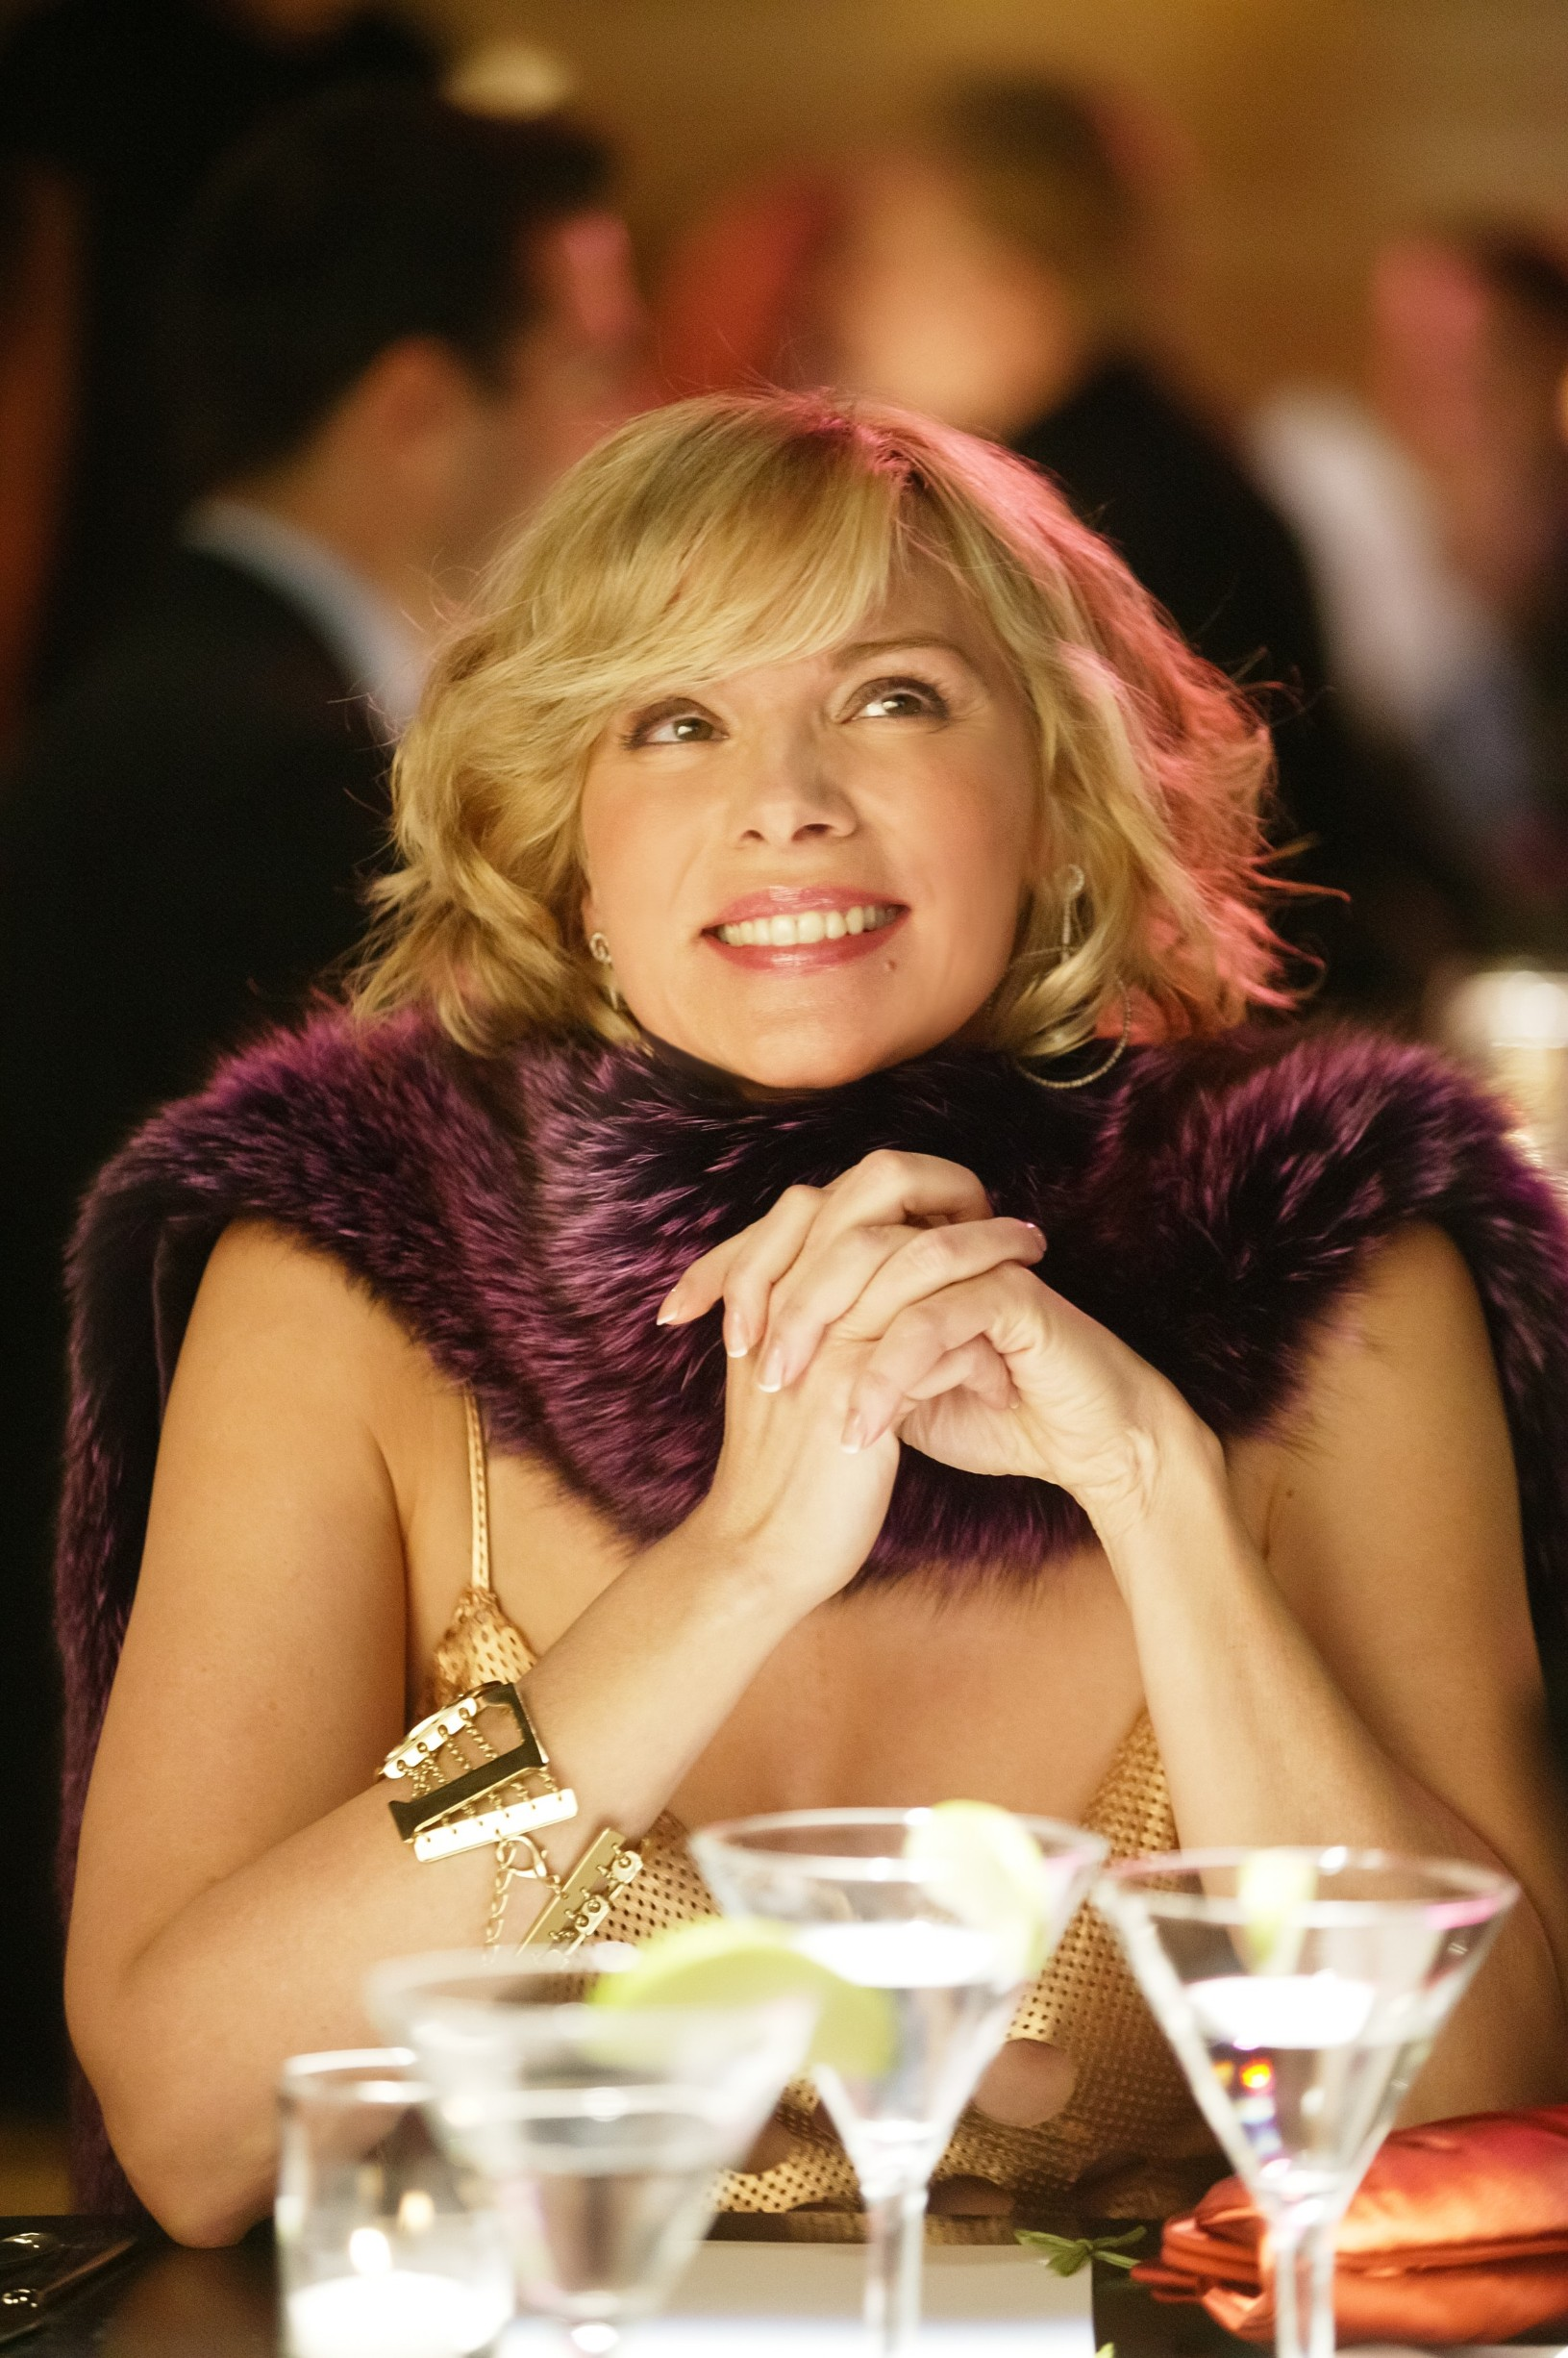 LIBRARY.  USA. Kim Cattrall as Samantha Jones in ©HBO classic TV series  : Sex and the City (1998–2004).  Ref: LMK106-J6699-300720 Supplied by LMKMEDIA. Editorial Only. Landmark Media is not the copyright owner of these Film or TV stills but provides a service only for recognised Media outlets. pictures@lmkmedia.com,Image: 548687011, License: Rights-managed, Restrictions: Supplied by Landmark Media. Editorial Only. Landmark Media is not the copyright owner of these Film or TV stills but provides a service only for recognised Media outlets. Per la presente foto non è stata rilasciata liberatoria. Ai sensi di legge e come gi, Model Release: no, Credit line: Supplied by LMK / IPA / IPA / Profimedia